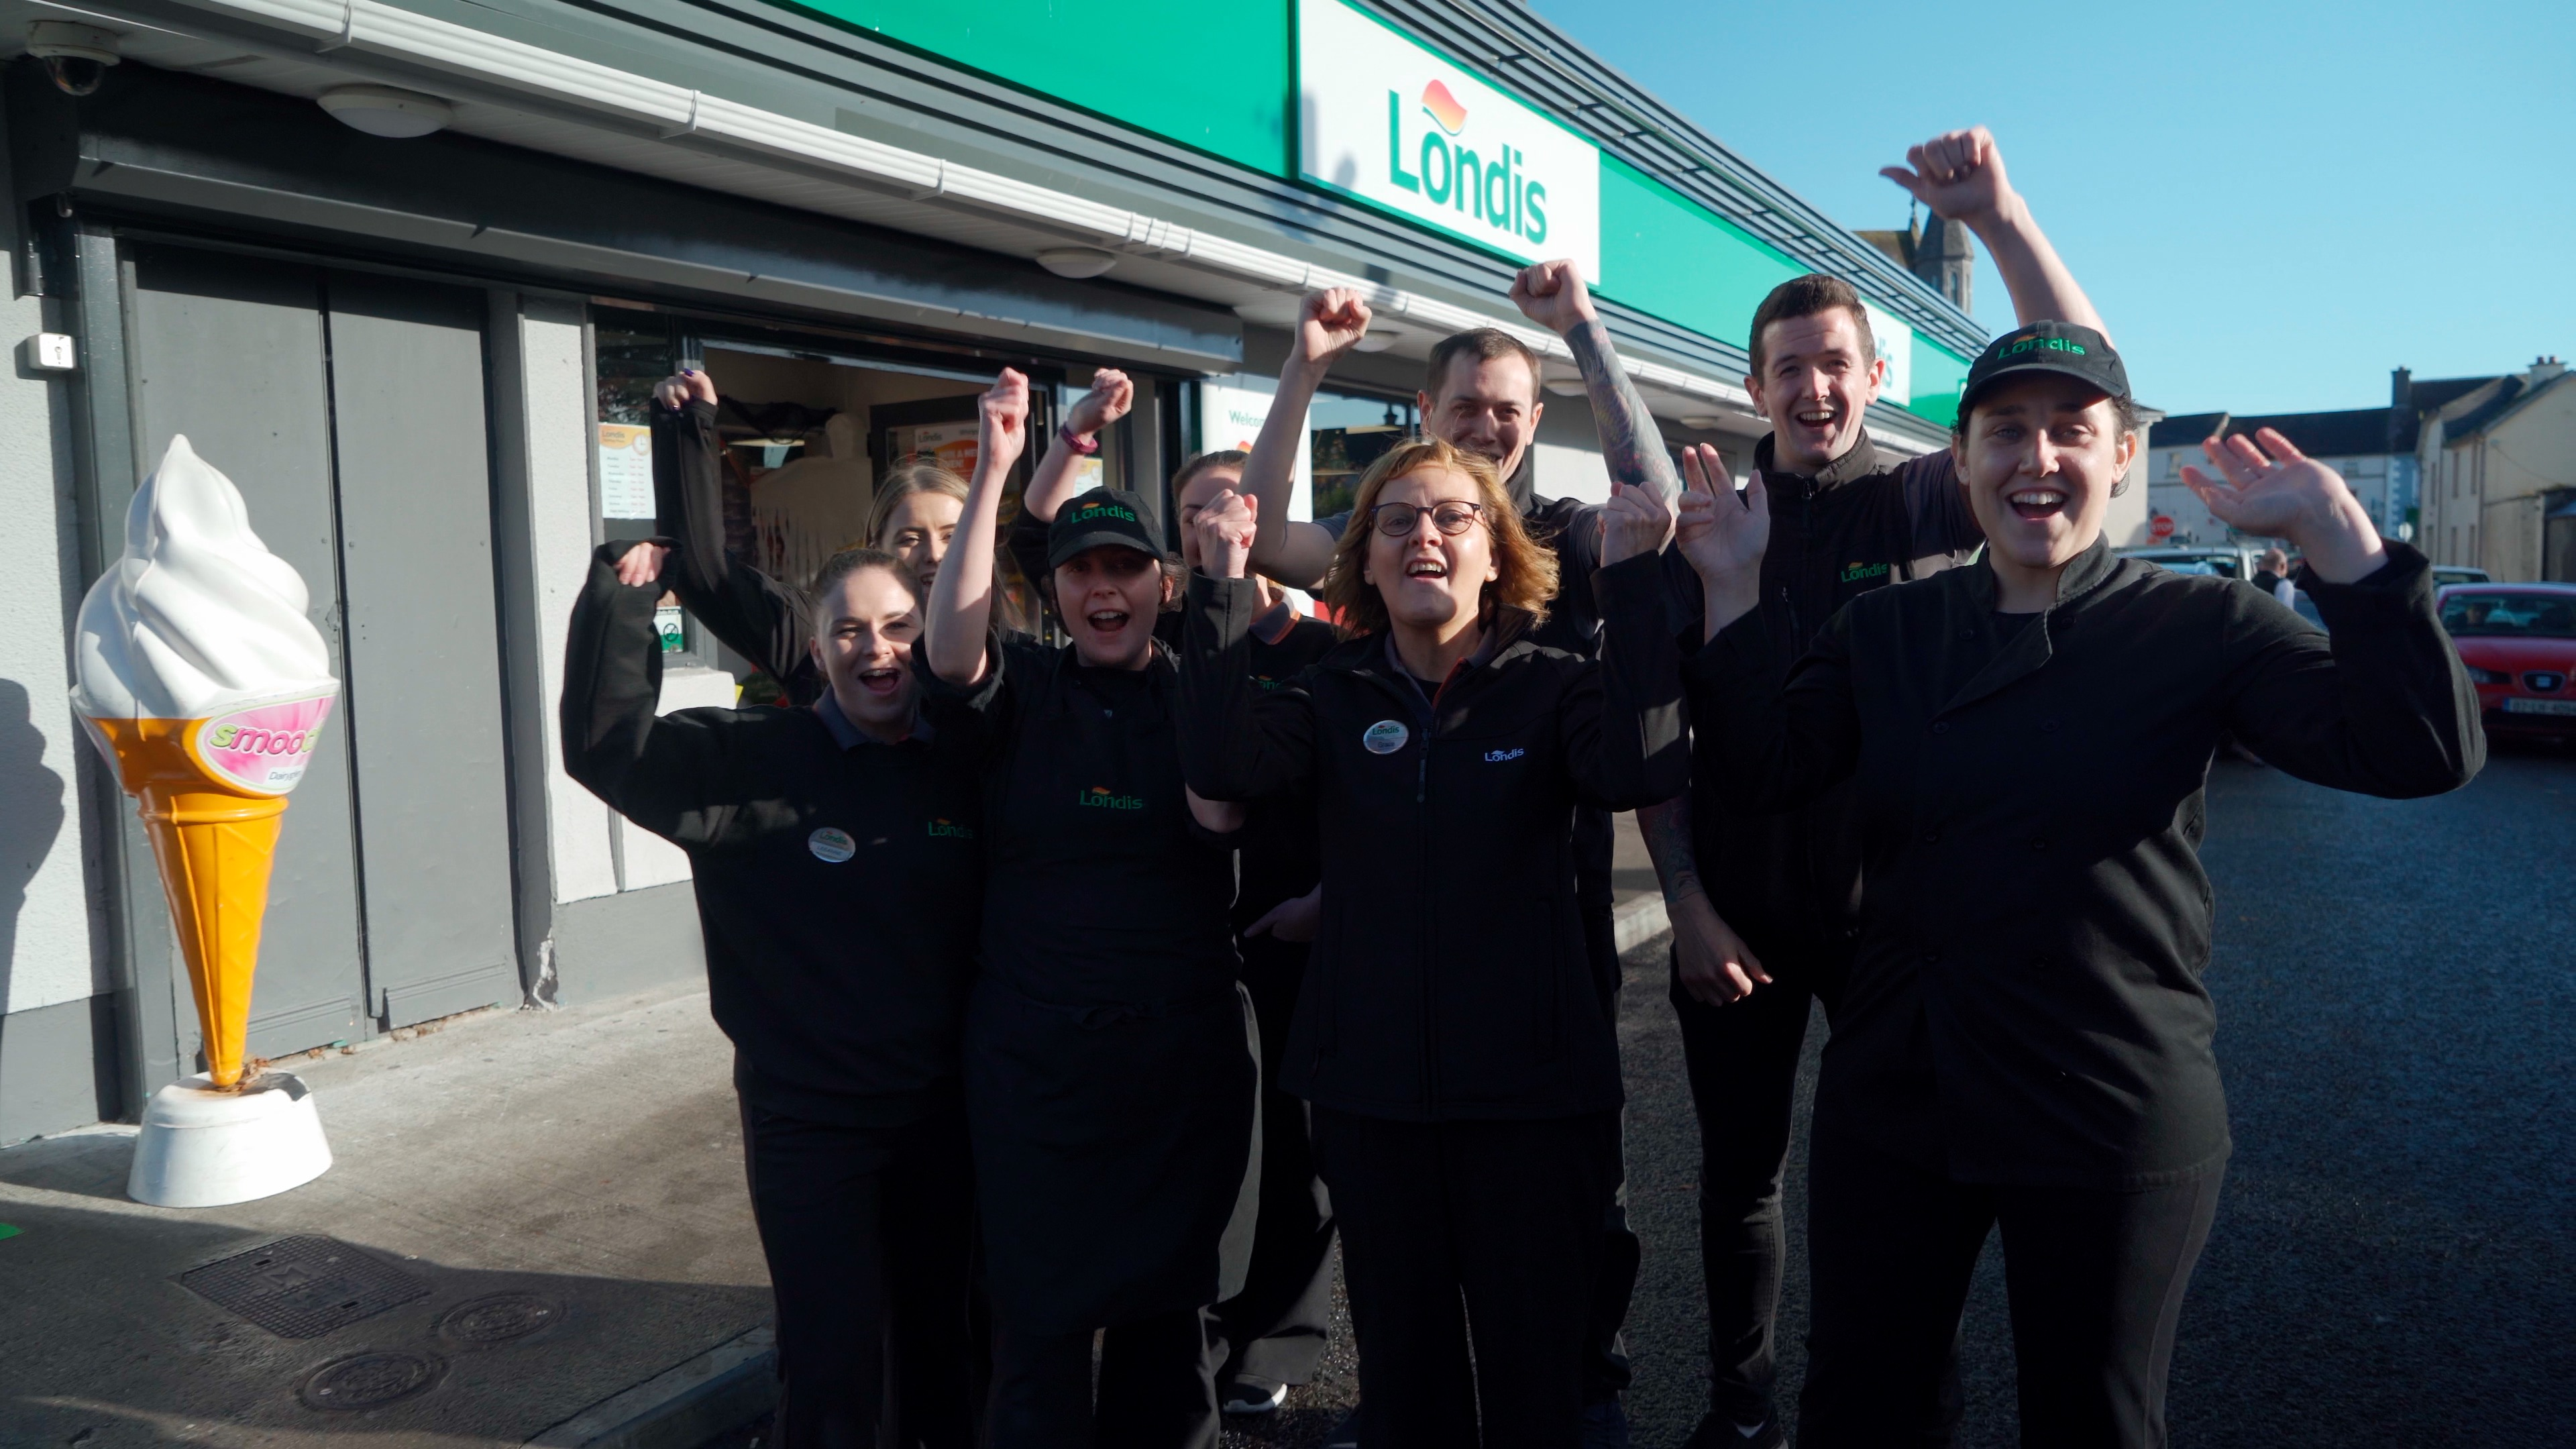 Knight's Londis Clara  proud to support Operation Transformation